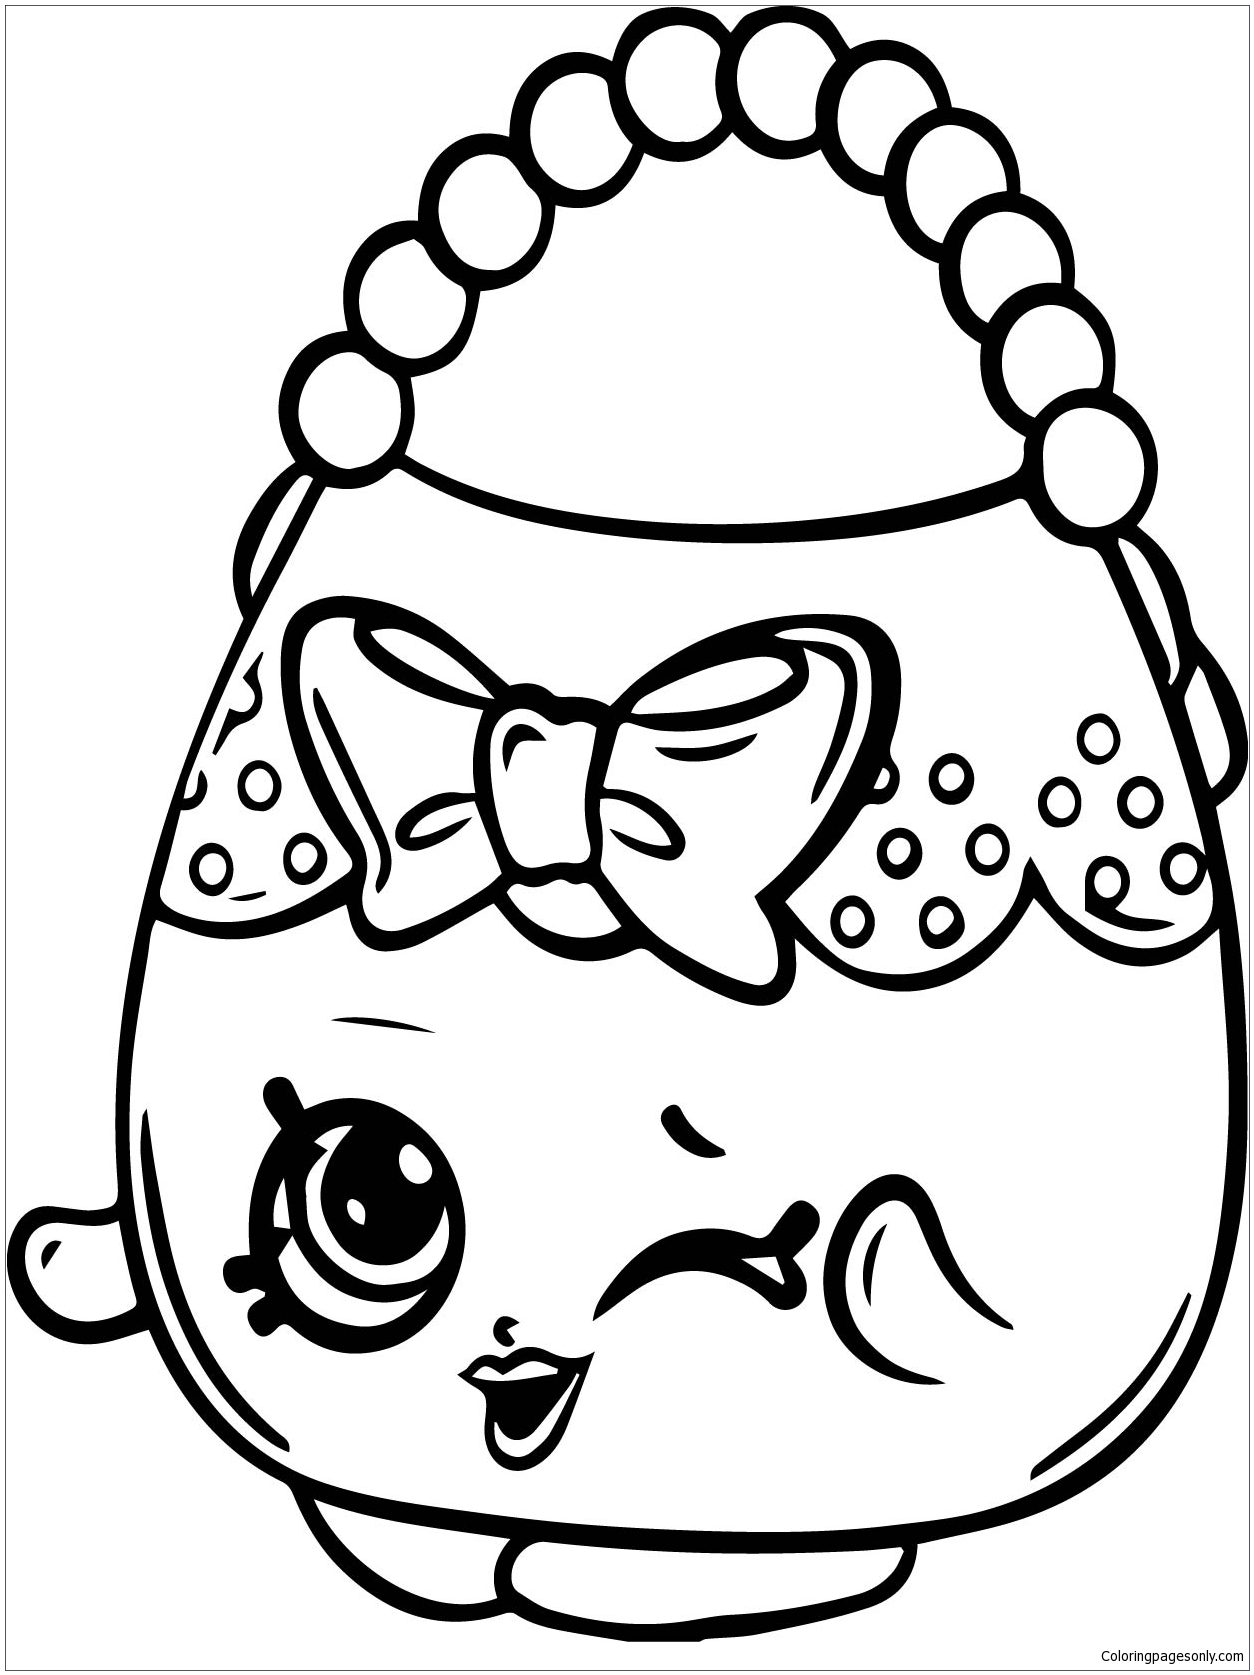 Handbag Harriet Shopkins Season 4 Coloring Page Free